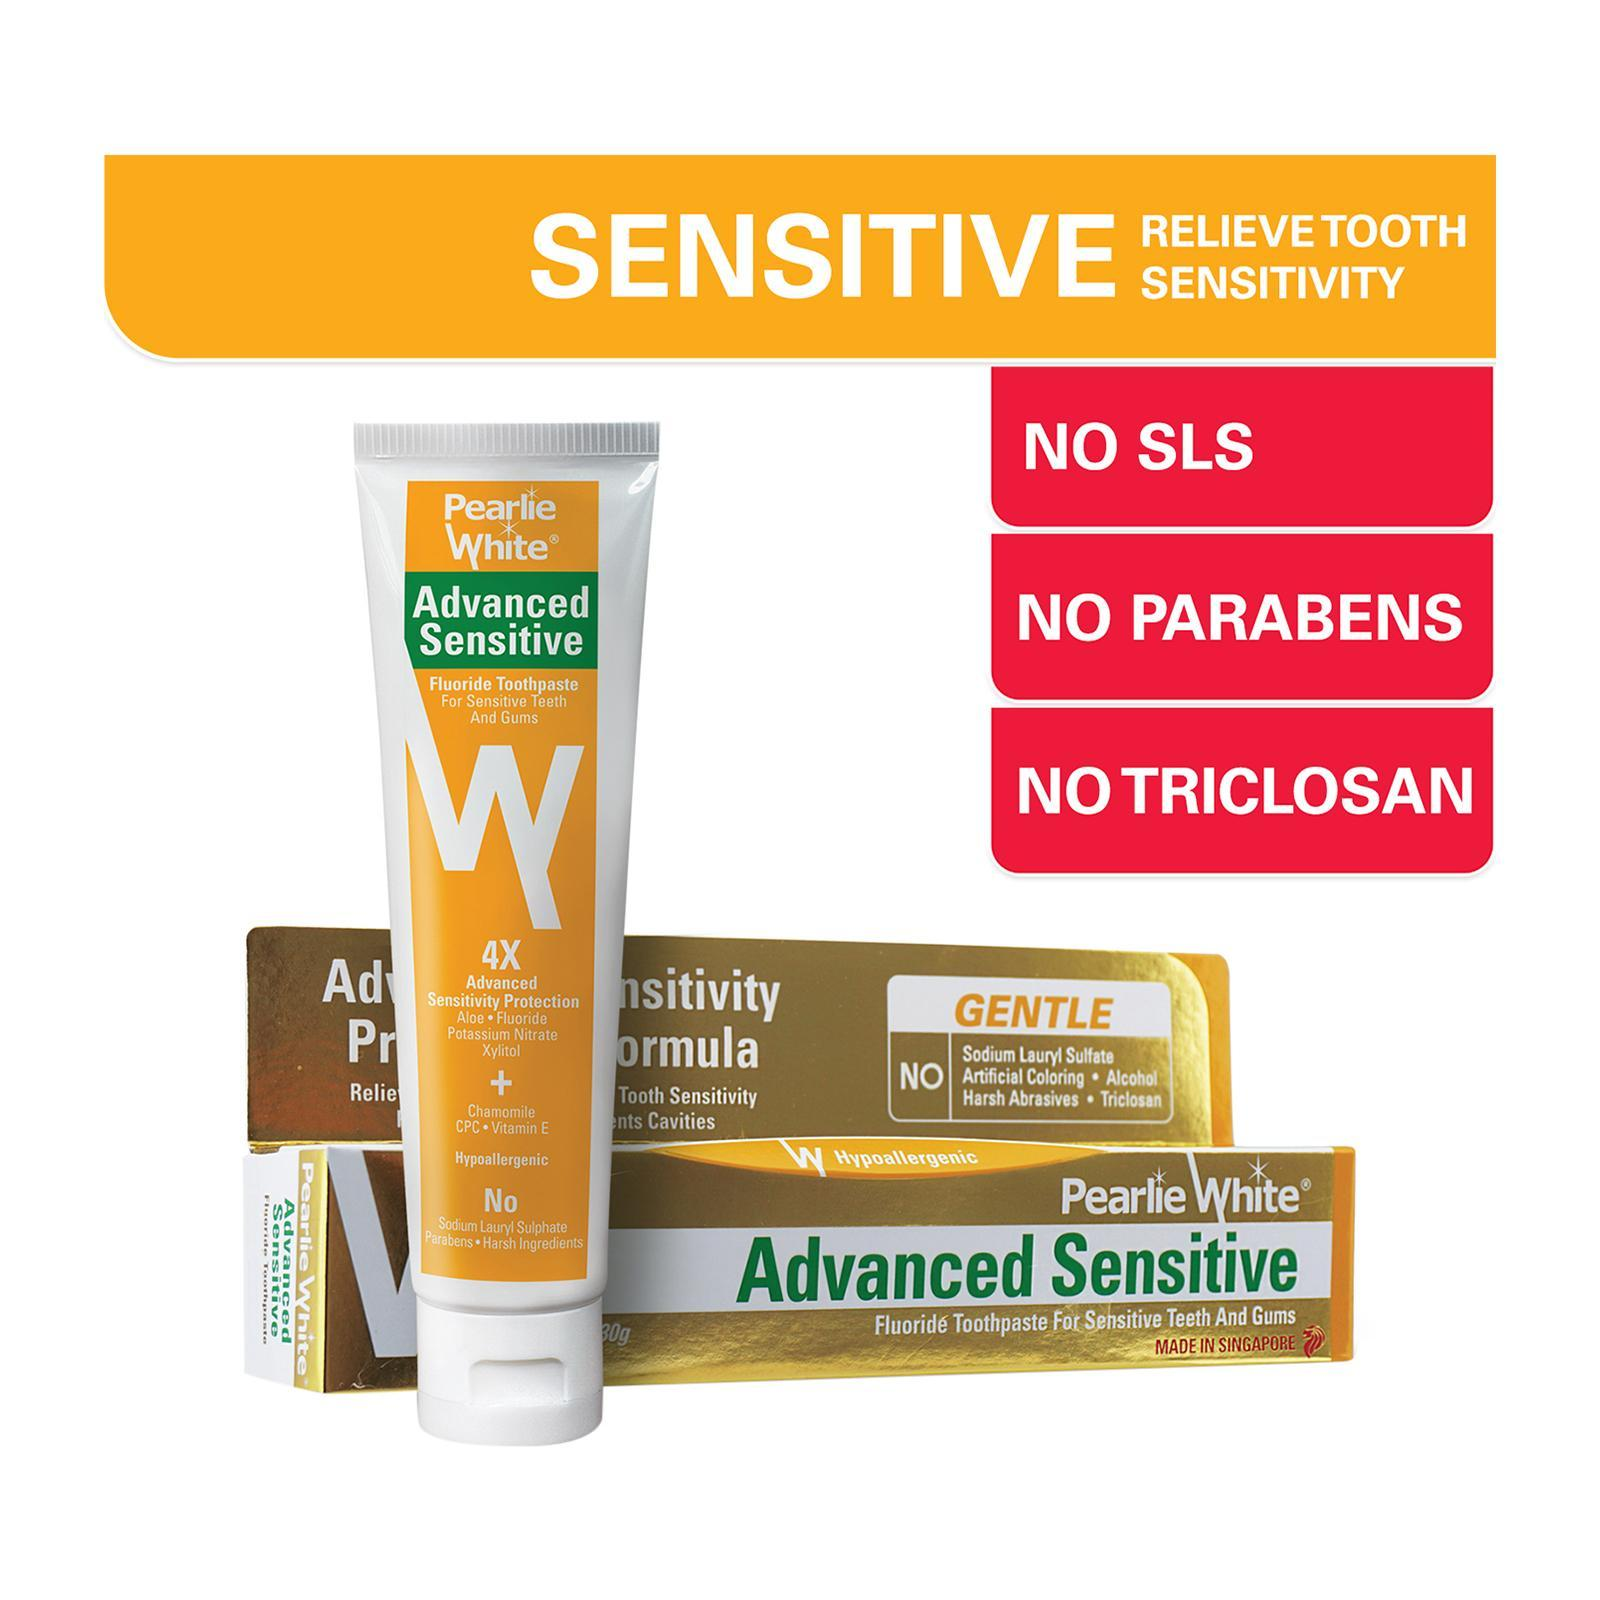 Pearlie White Advanced Sensitive Toothpaste